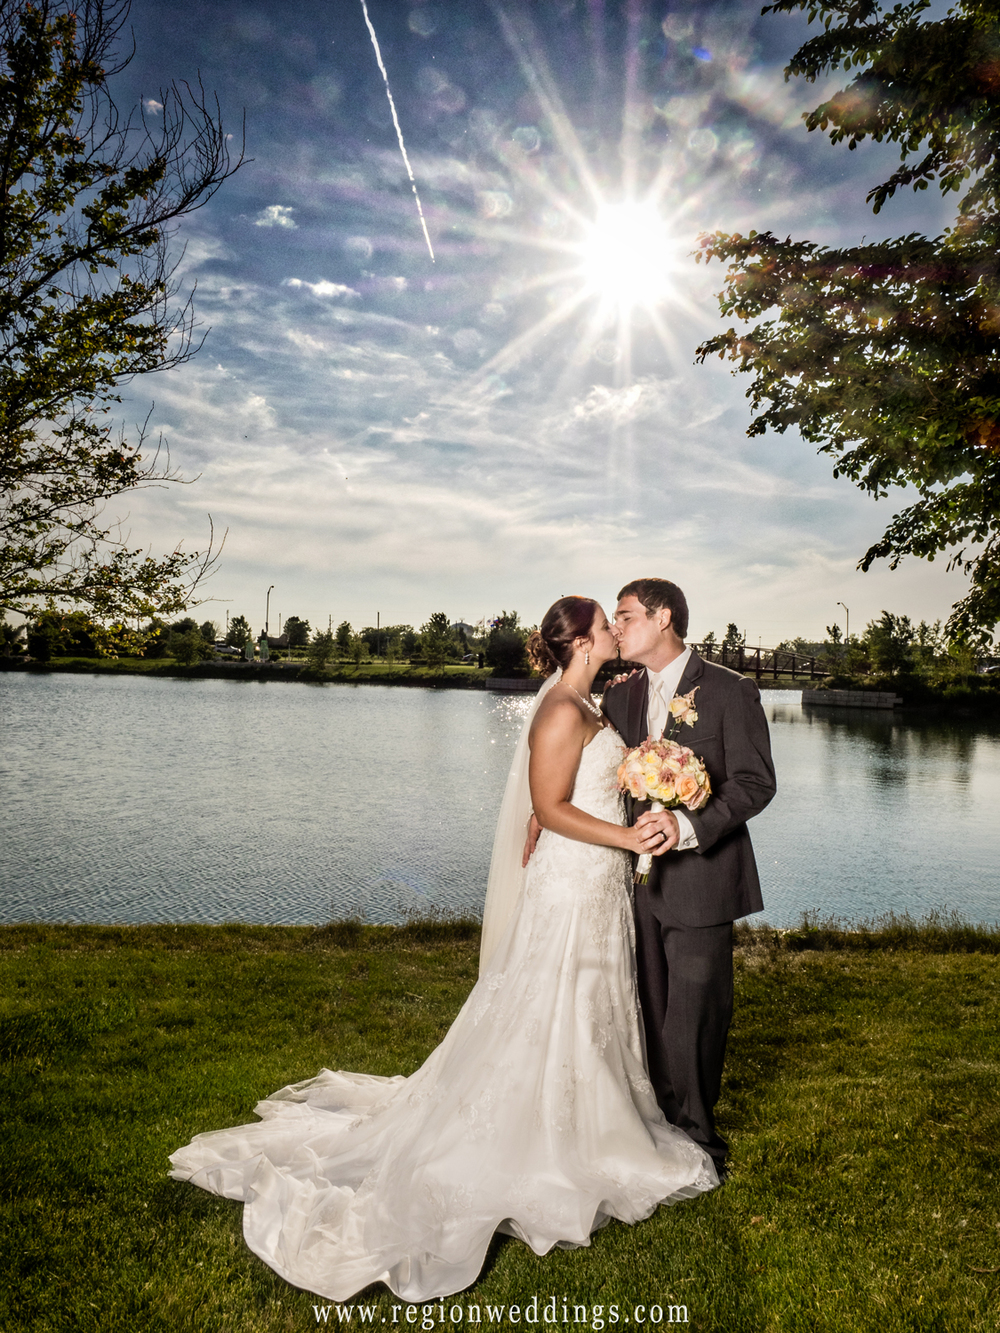 The bride and groom kiss underneath a sunburst after their outdoor summer wedding.